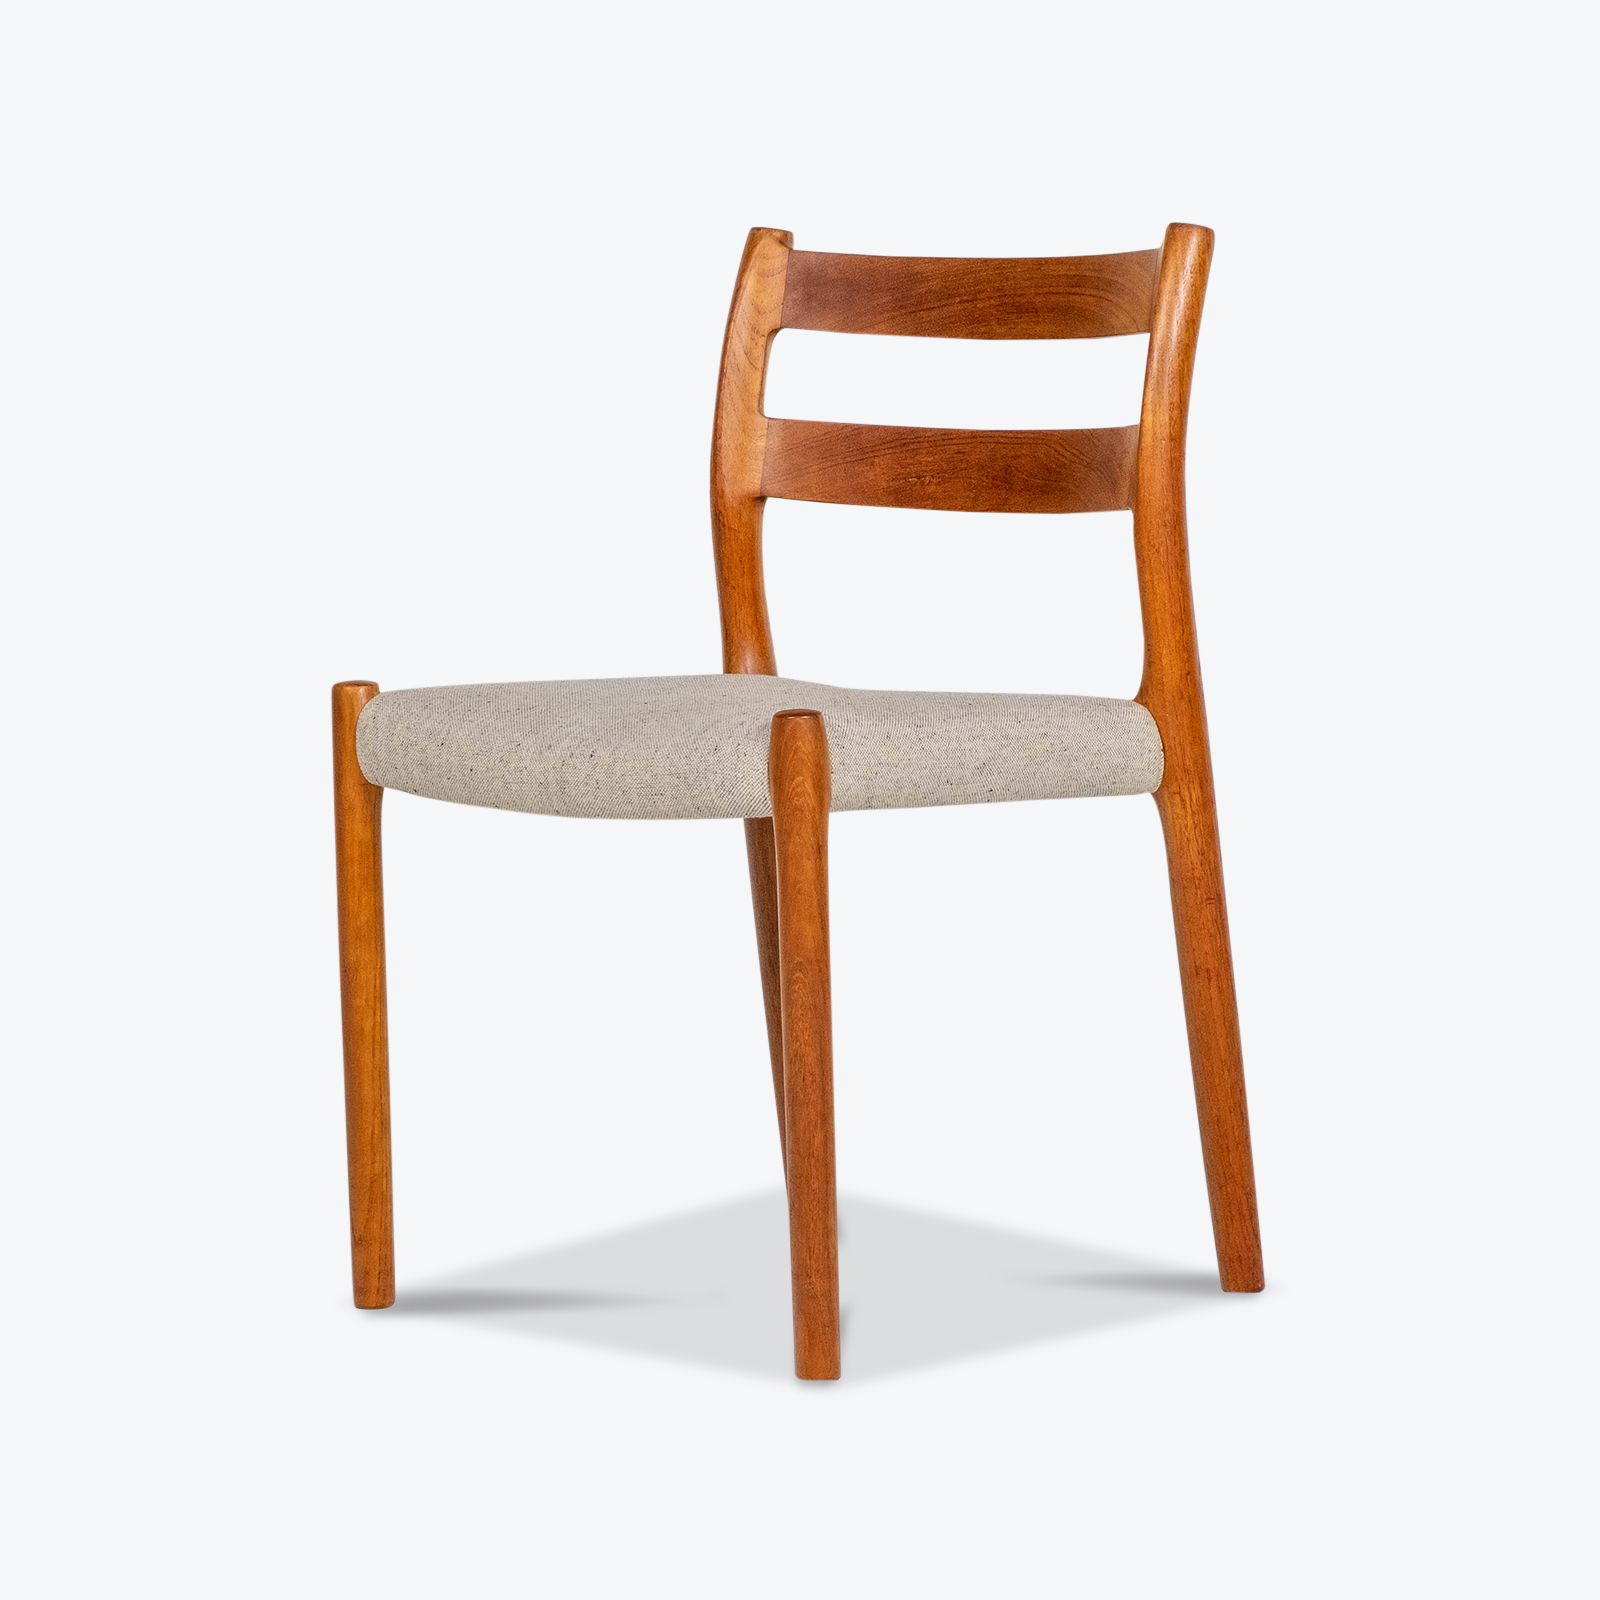 Set Of Four Ladder Back Dining Chairs By Niels Moller In Teak, 1960s, Denmark Hero